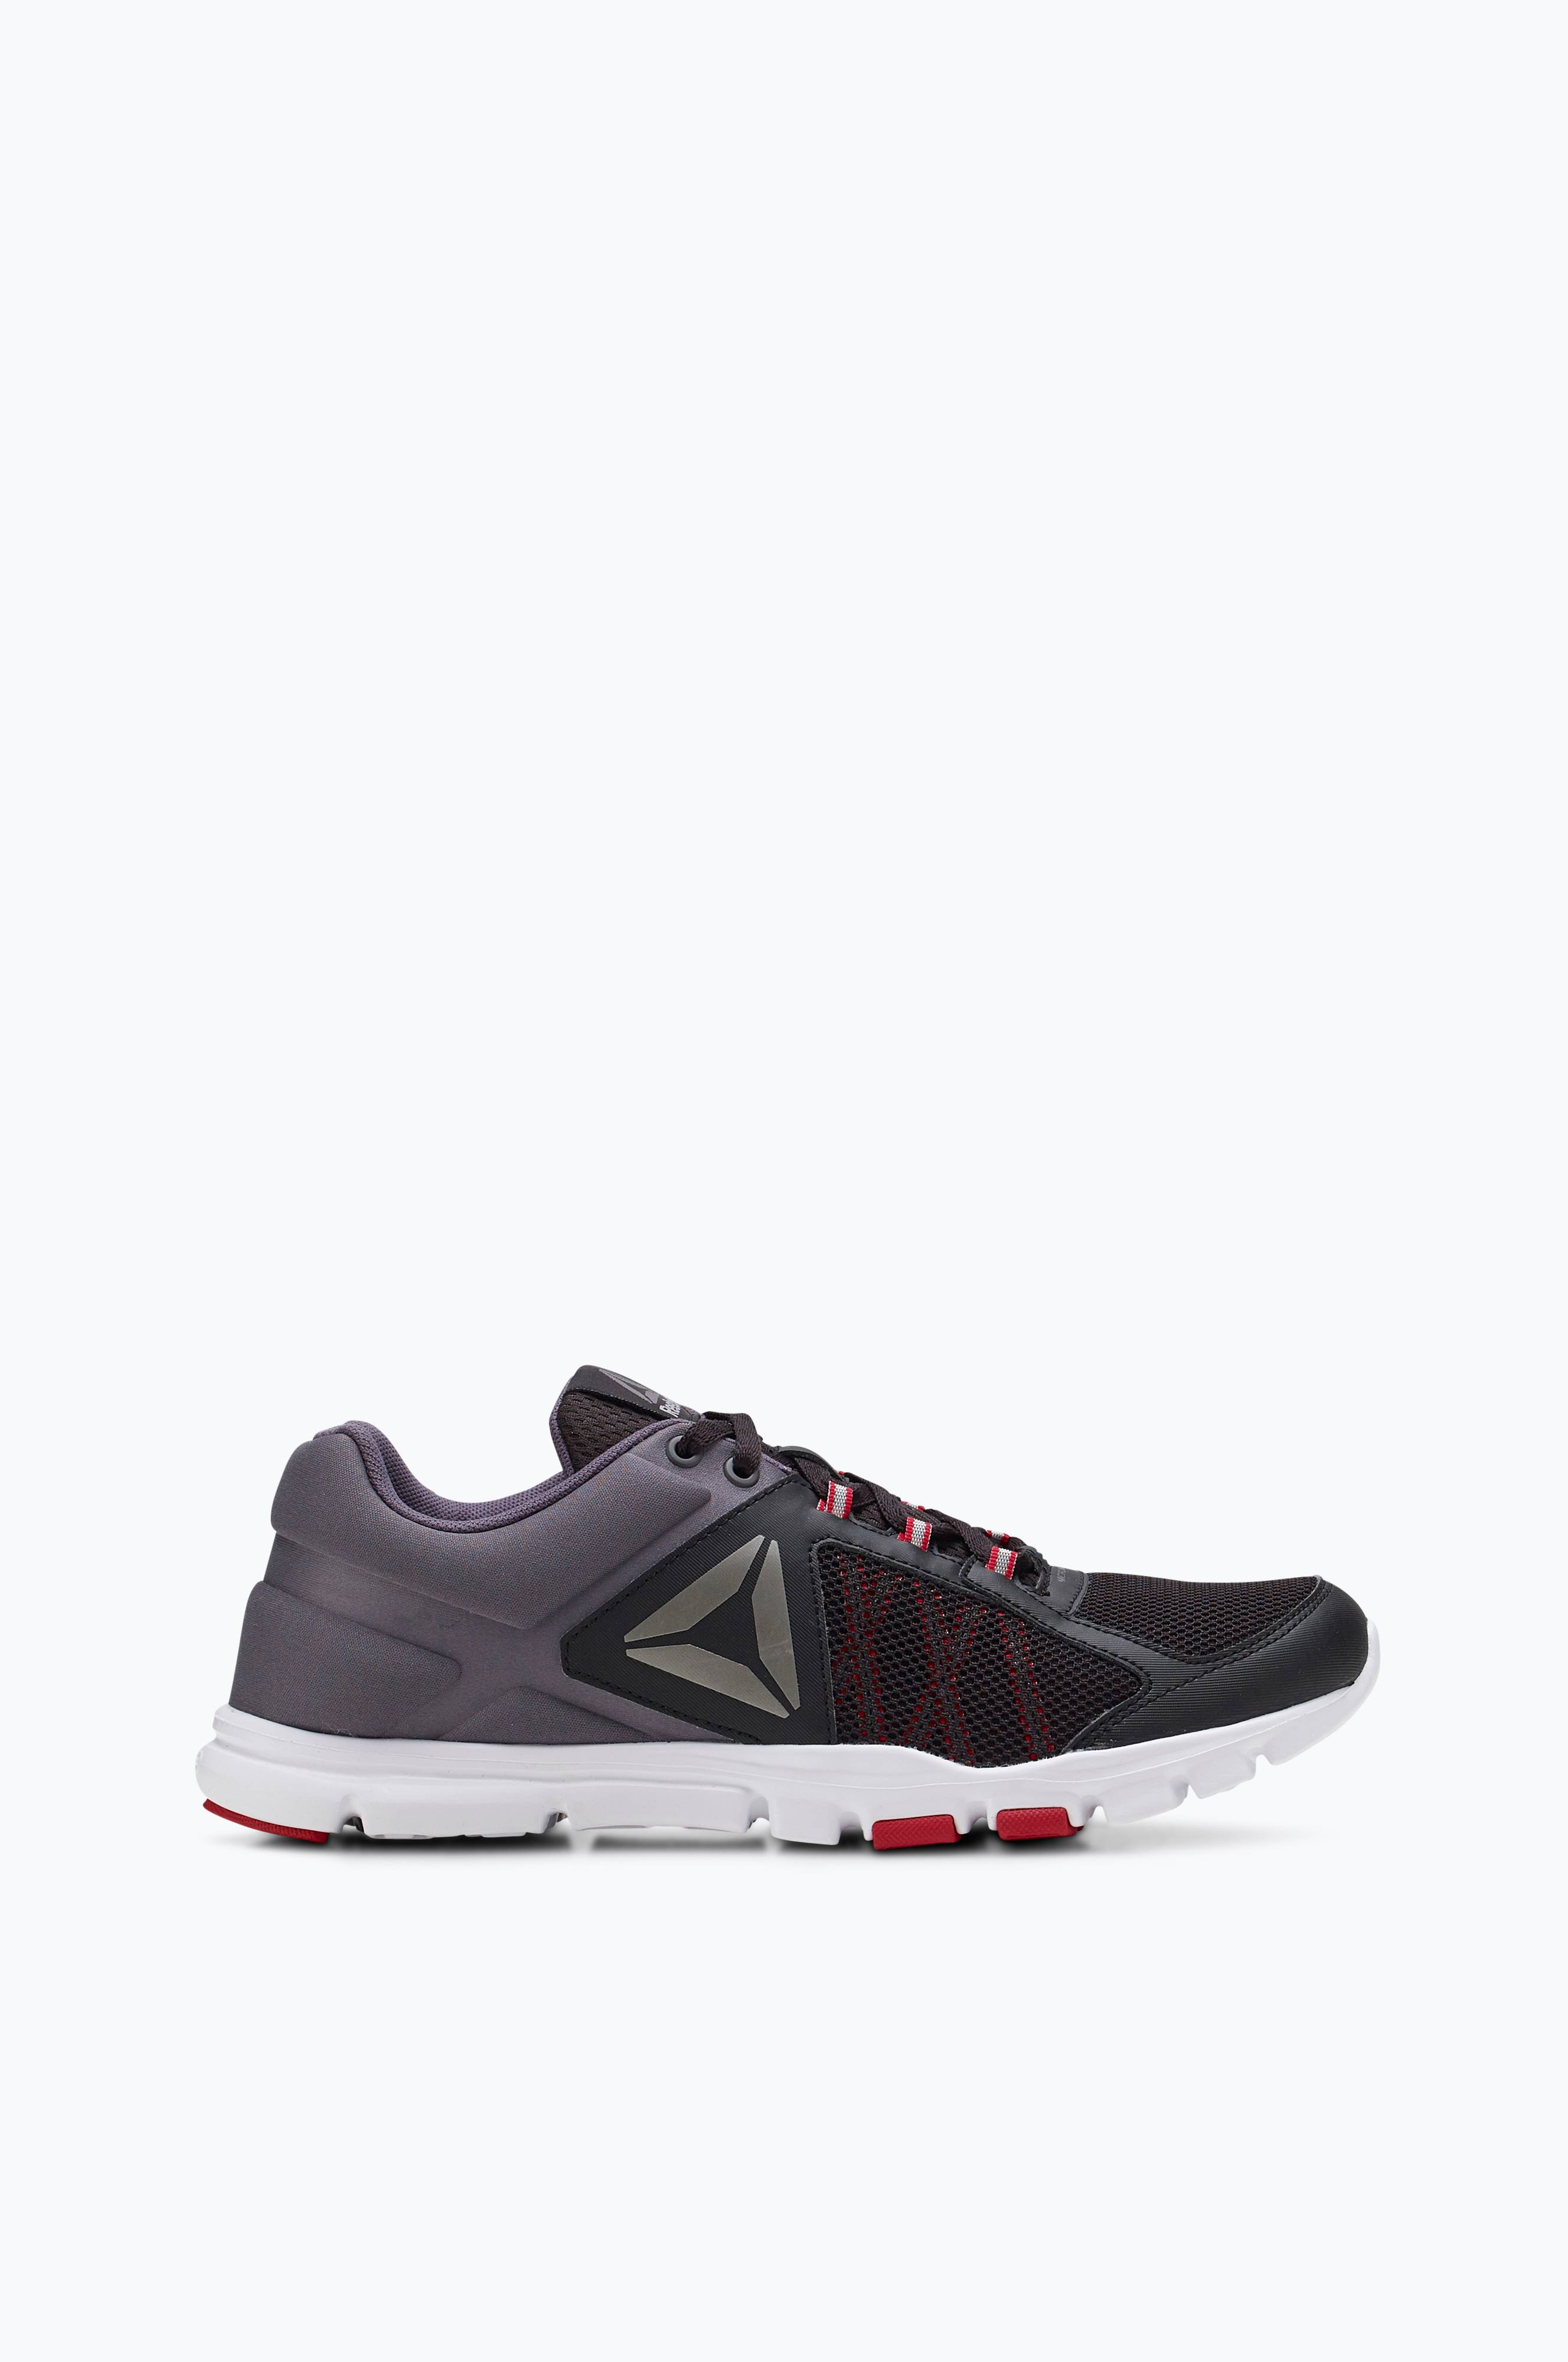 reebok sko tilbud, Reebok Yourflex Train 9.0 MT Training